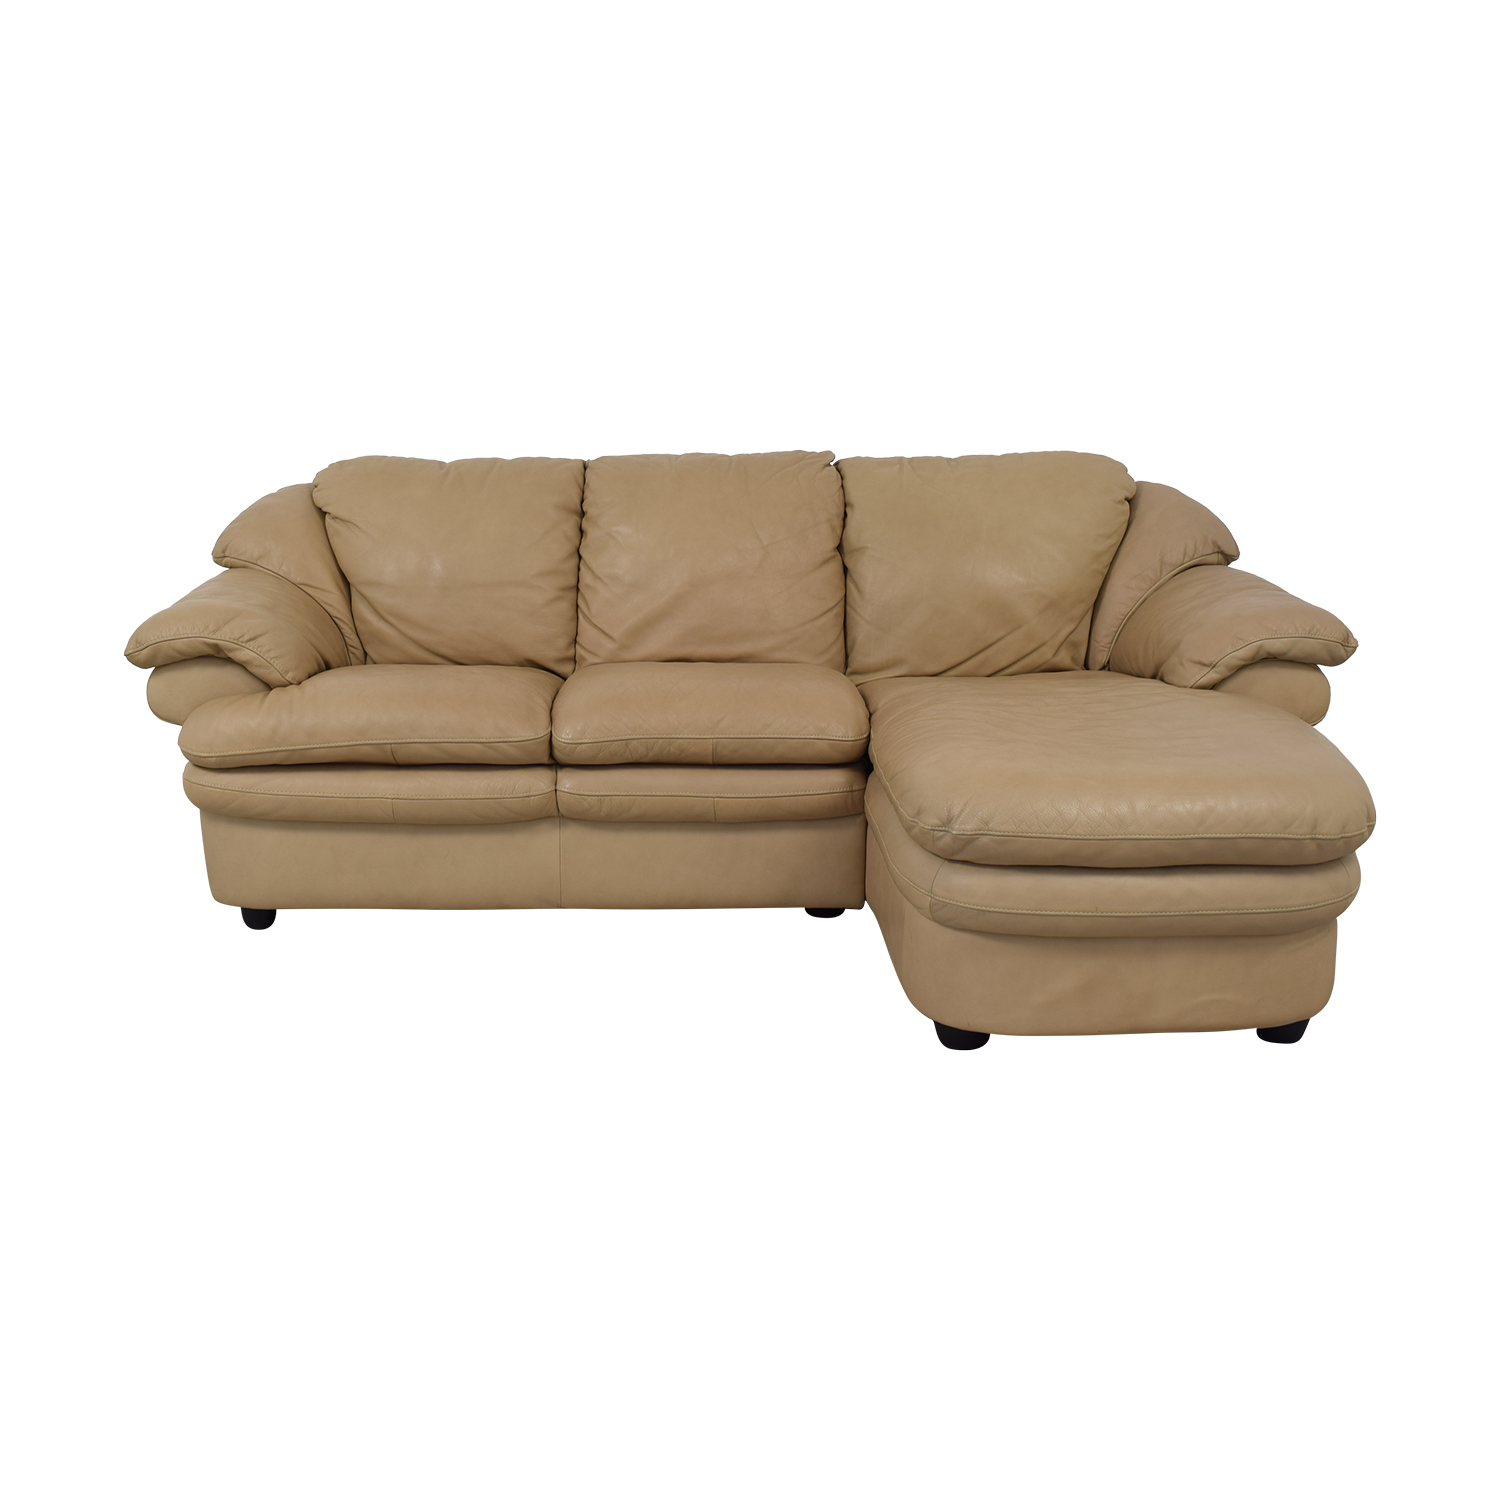 Natuzzi Natuzzi Chaise Sectional coupon